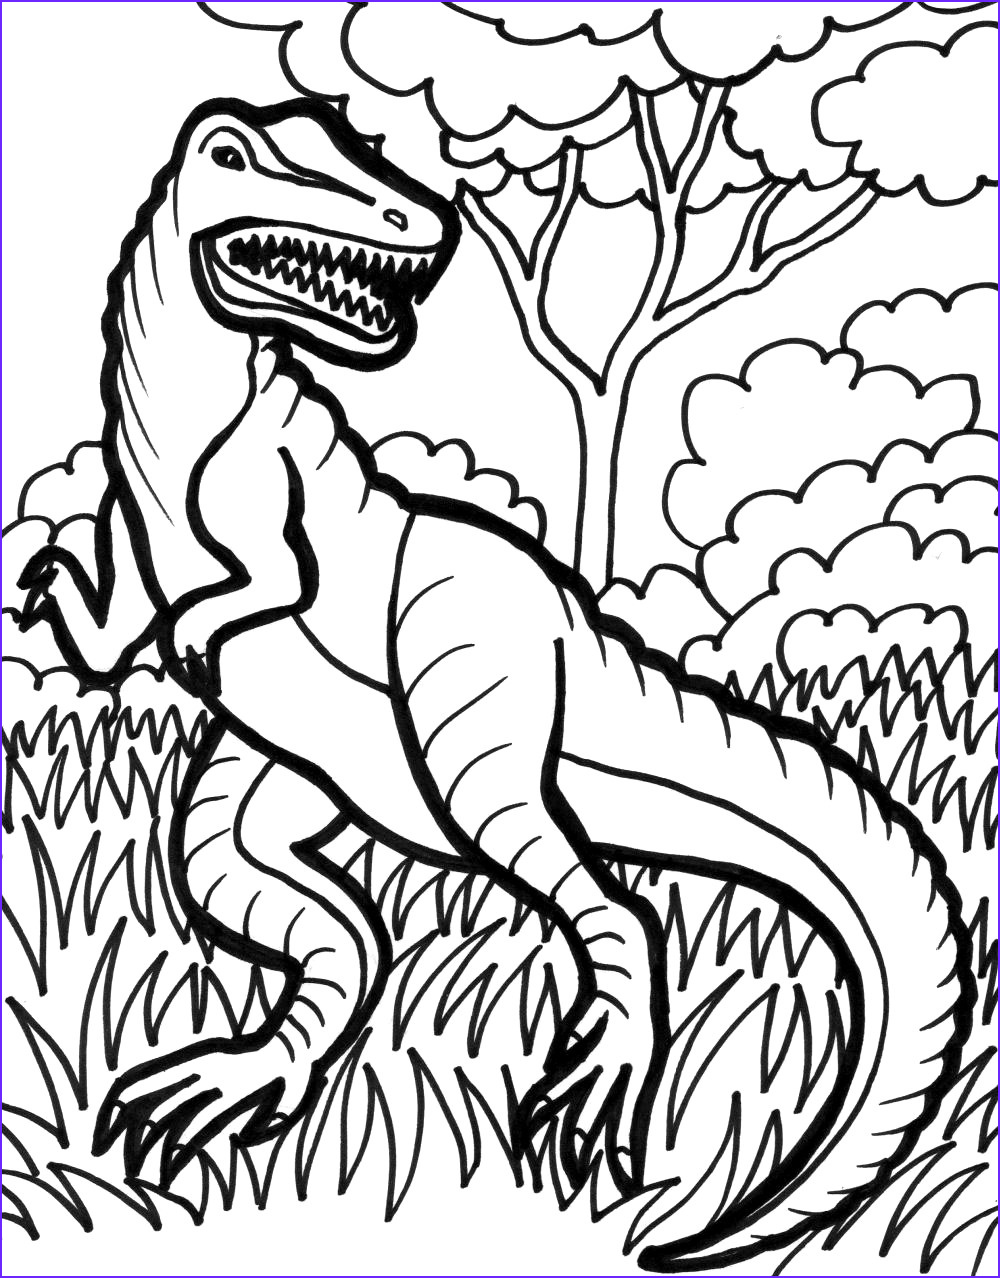 Coloring Pages Dinosaurs Cool Photos Trex Coloring Pages Best Coloring Pages for Kids